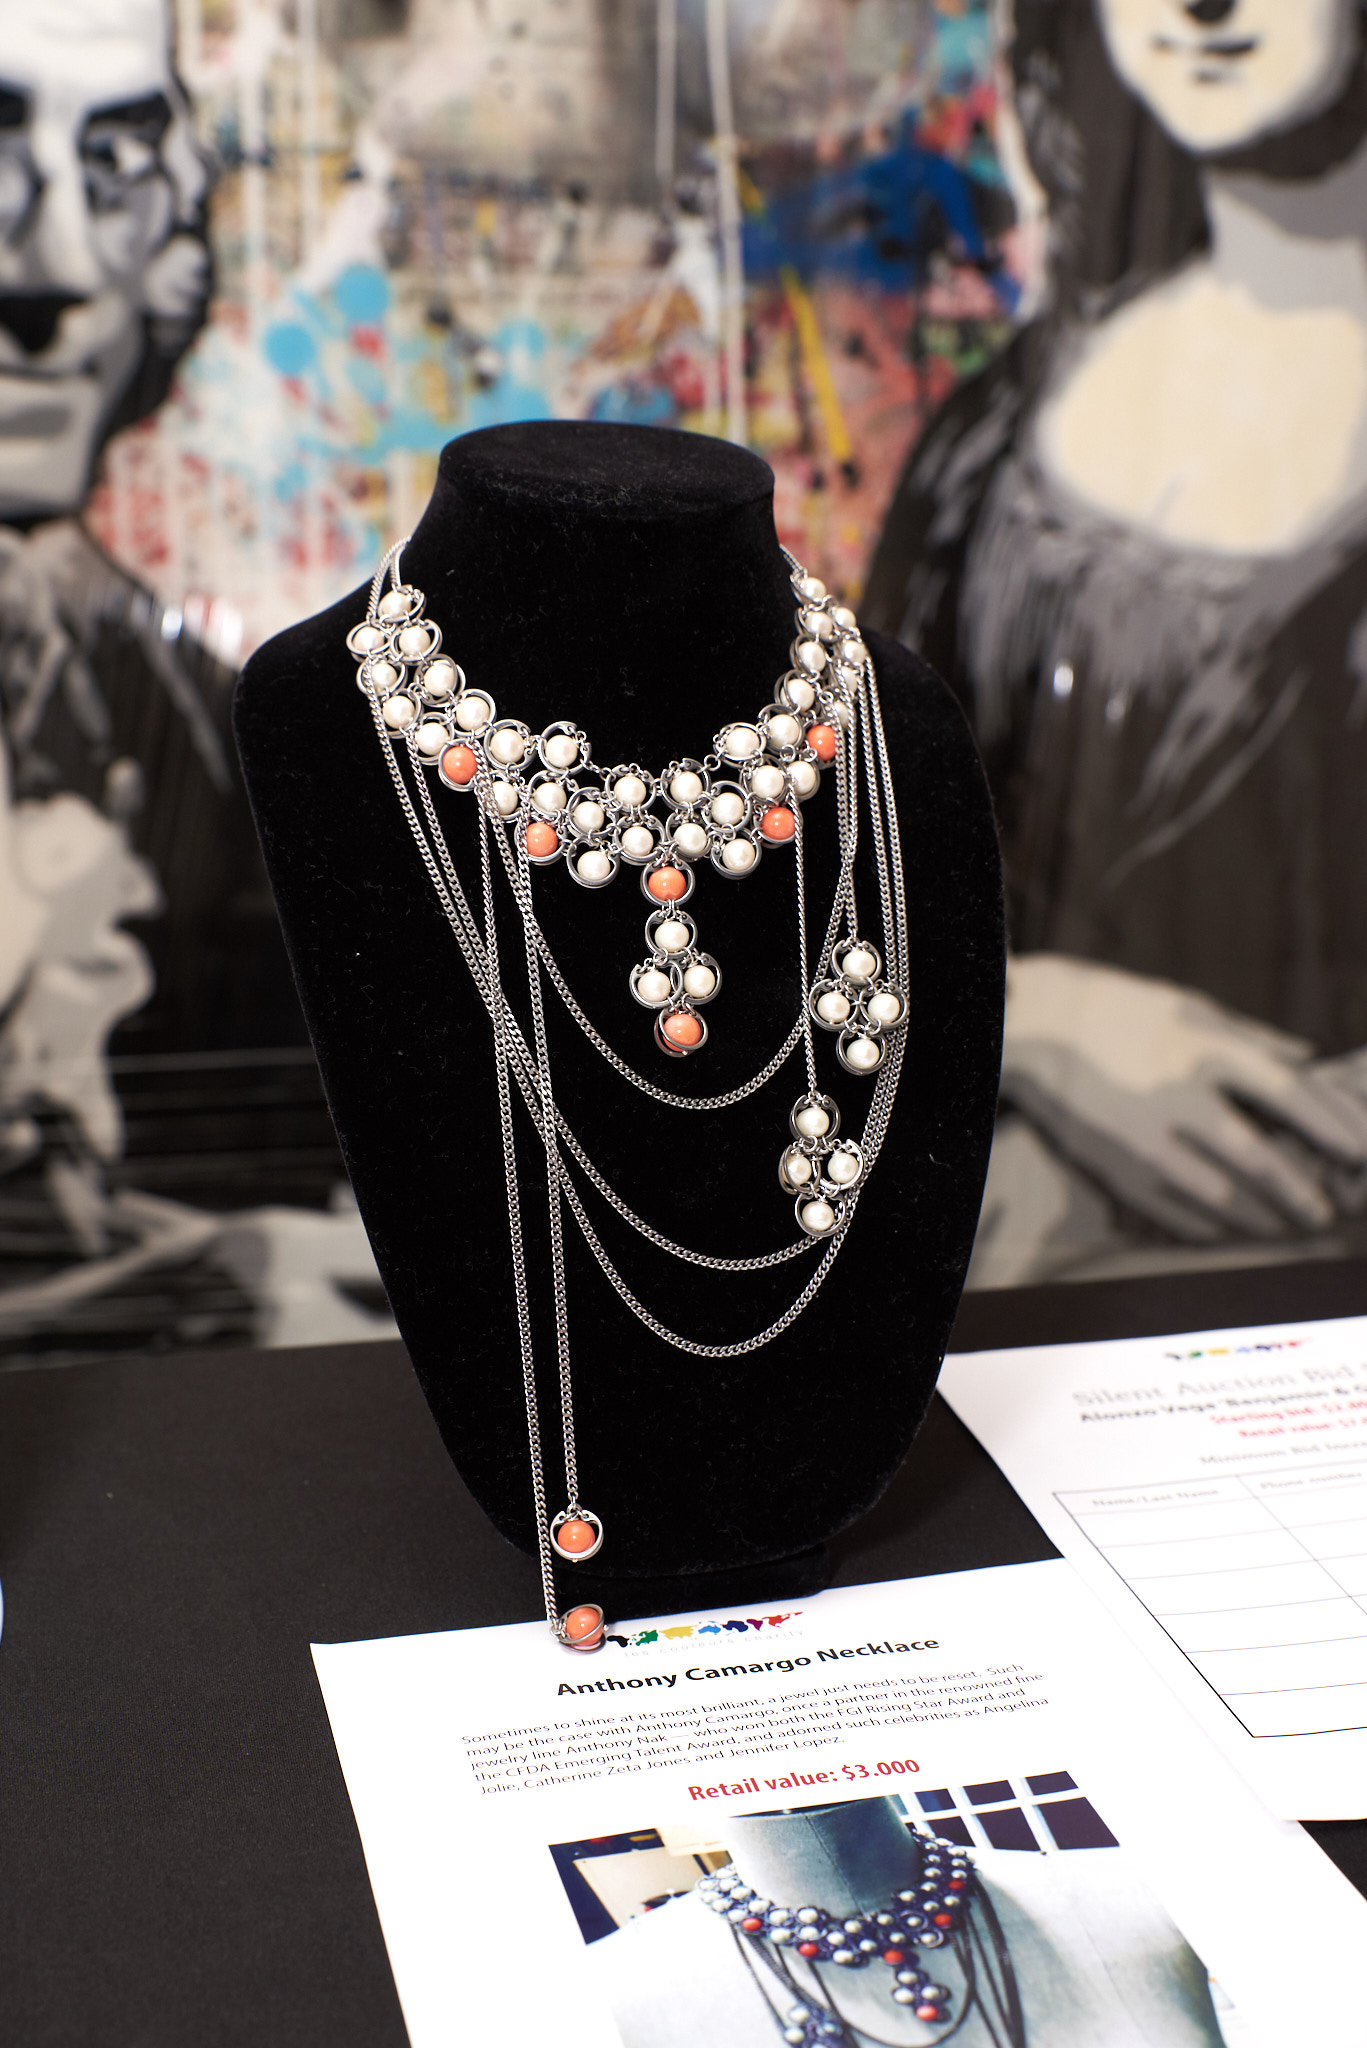 Antony Camargo Necklace.JPG